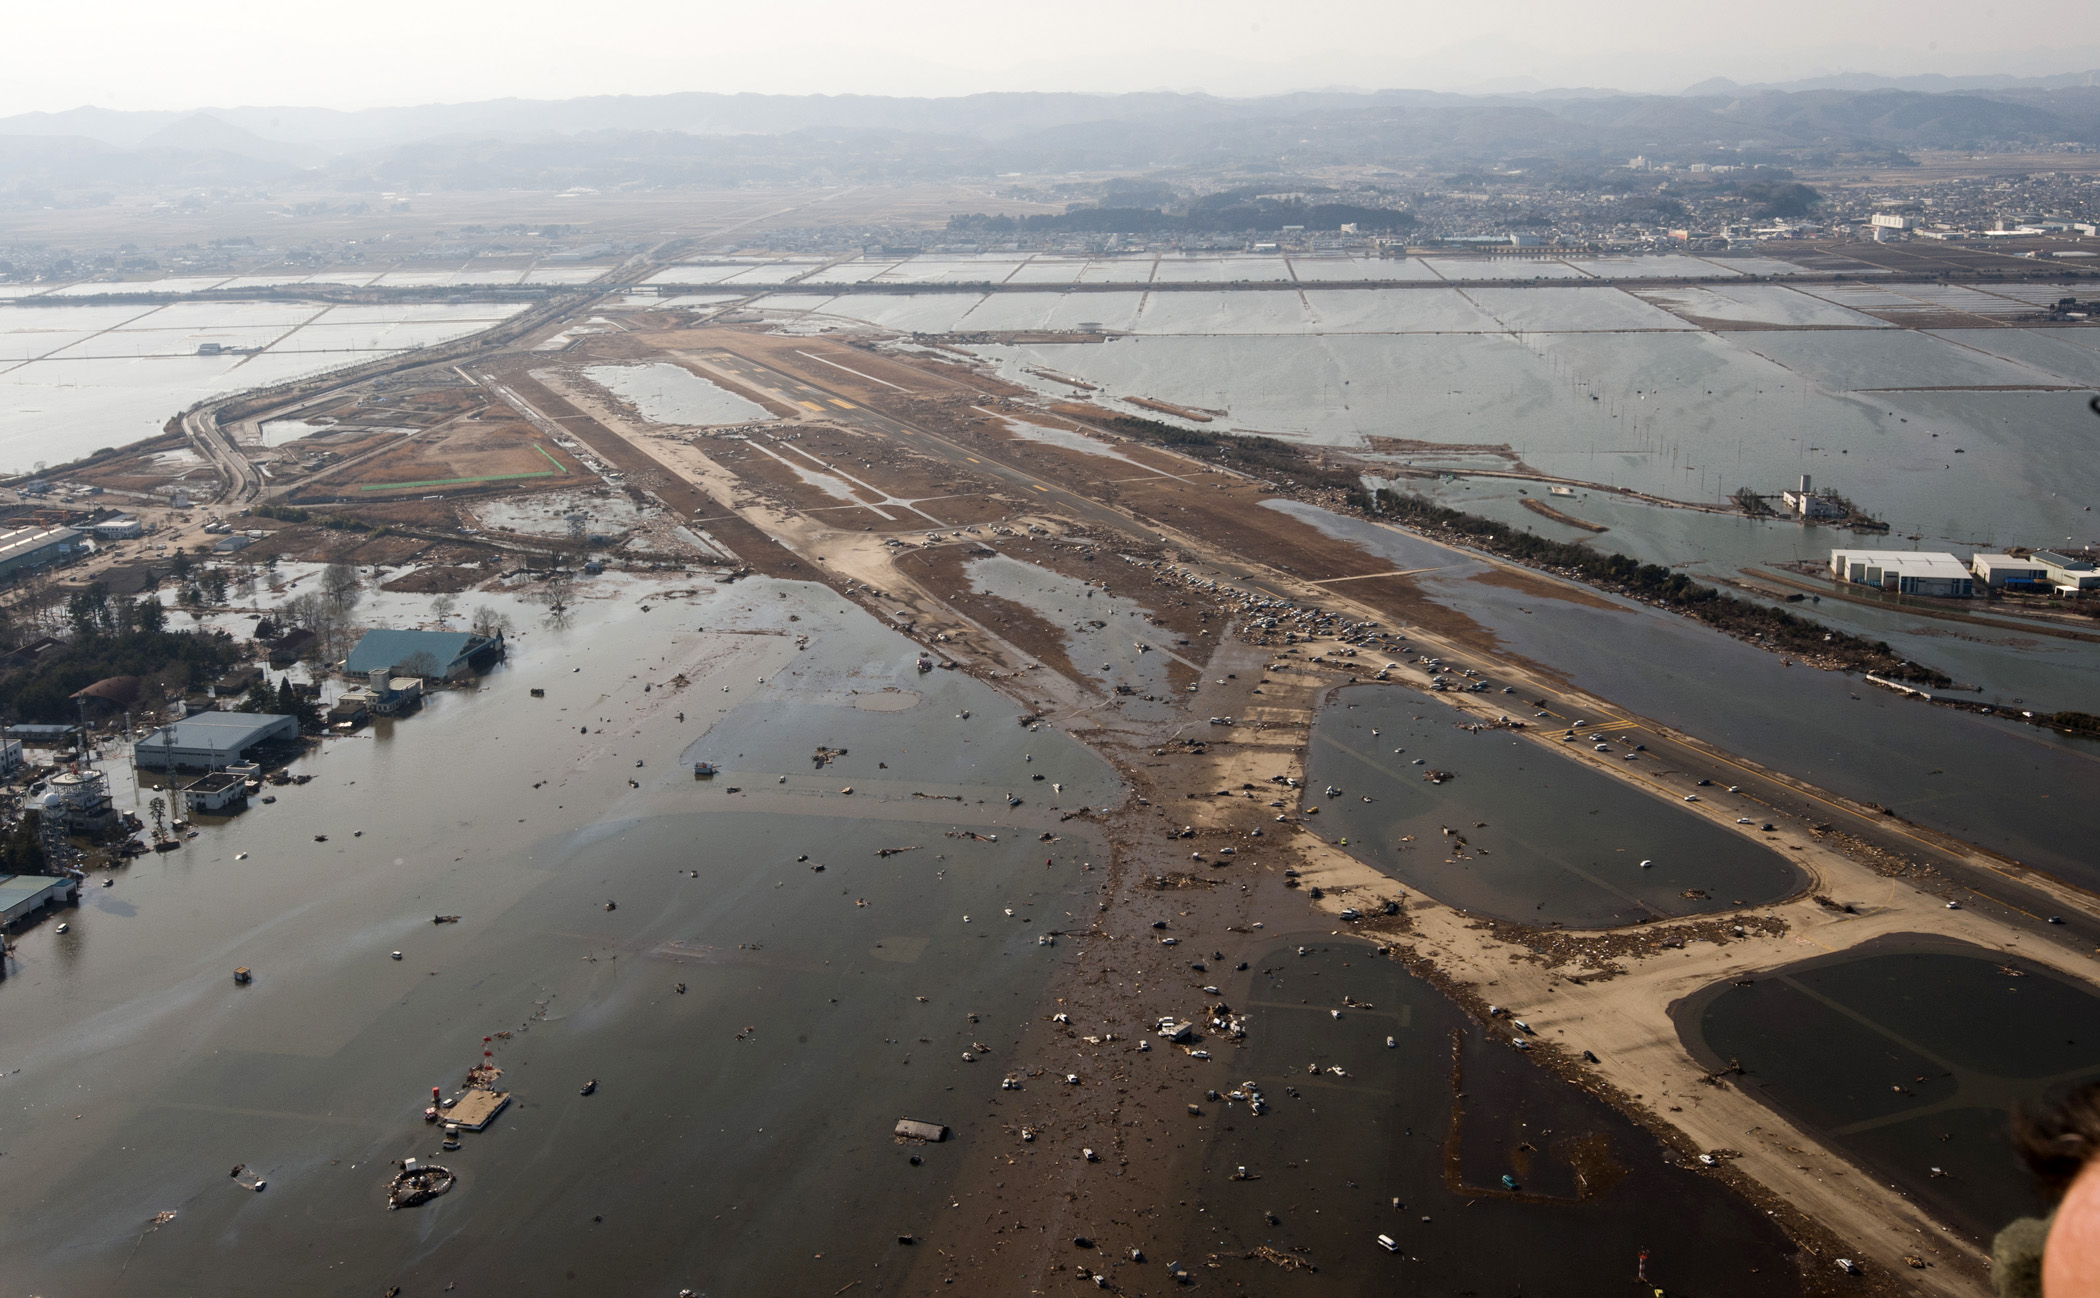 The 2011 Japan earthquake rattled supply chains globally.